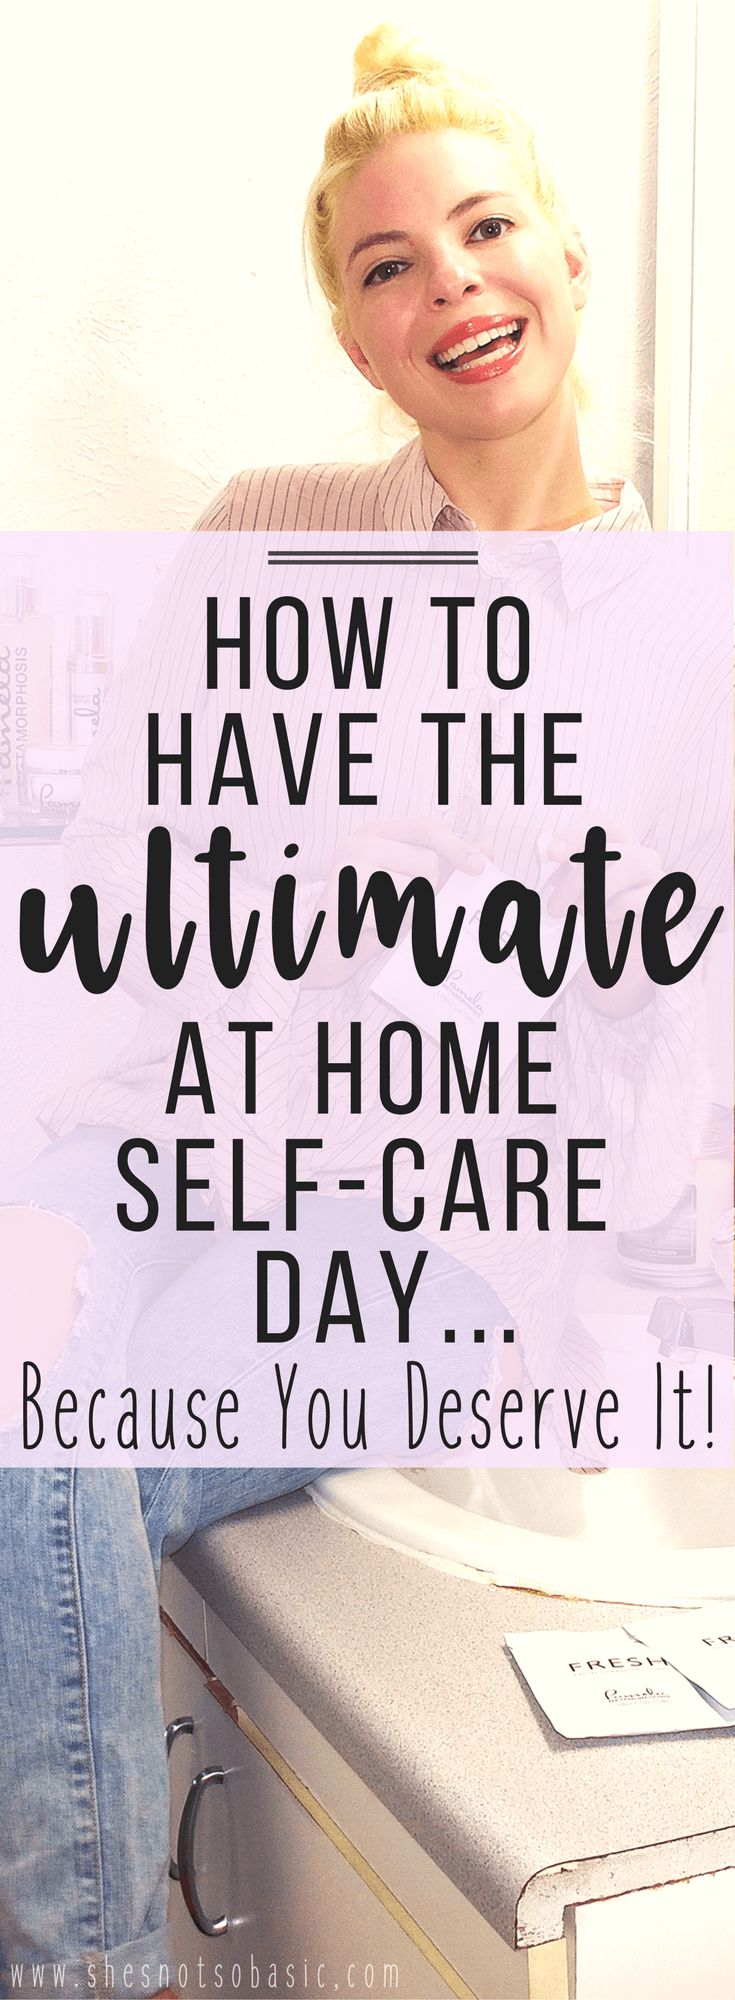 Sometimes we just need to take a step back and pamper ourselves! See how I like to have the ultimate at home self care day with Pamela Metamorphosis. #skincare, #selfcare, how to have the ultimate self care day, self care isn't selfish, self care, #ad, self care ideas, self care tips, skincare routine